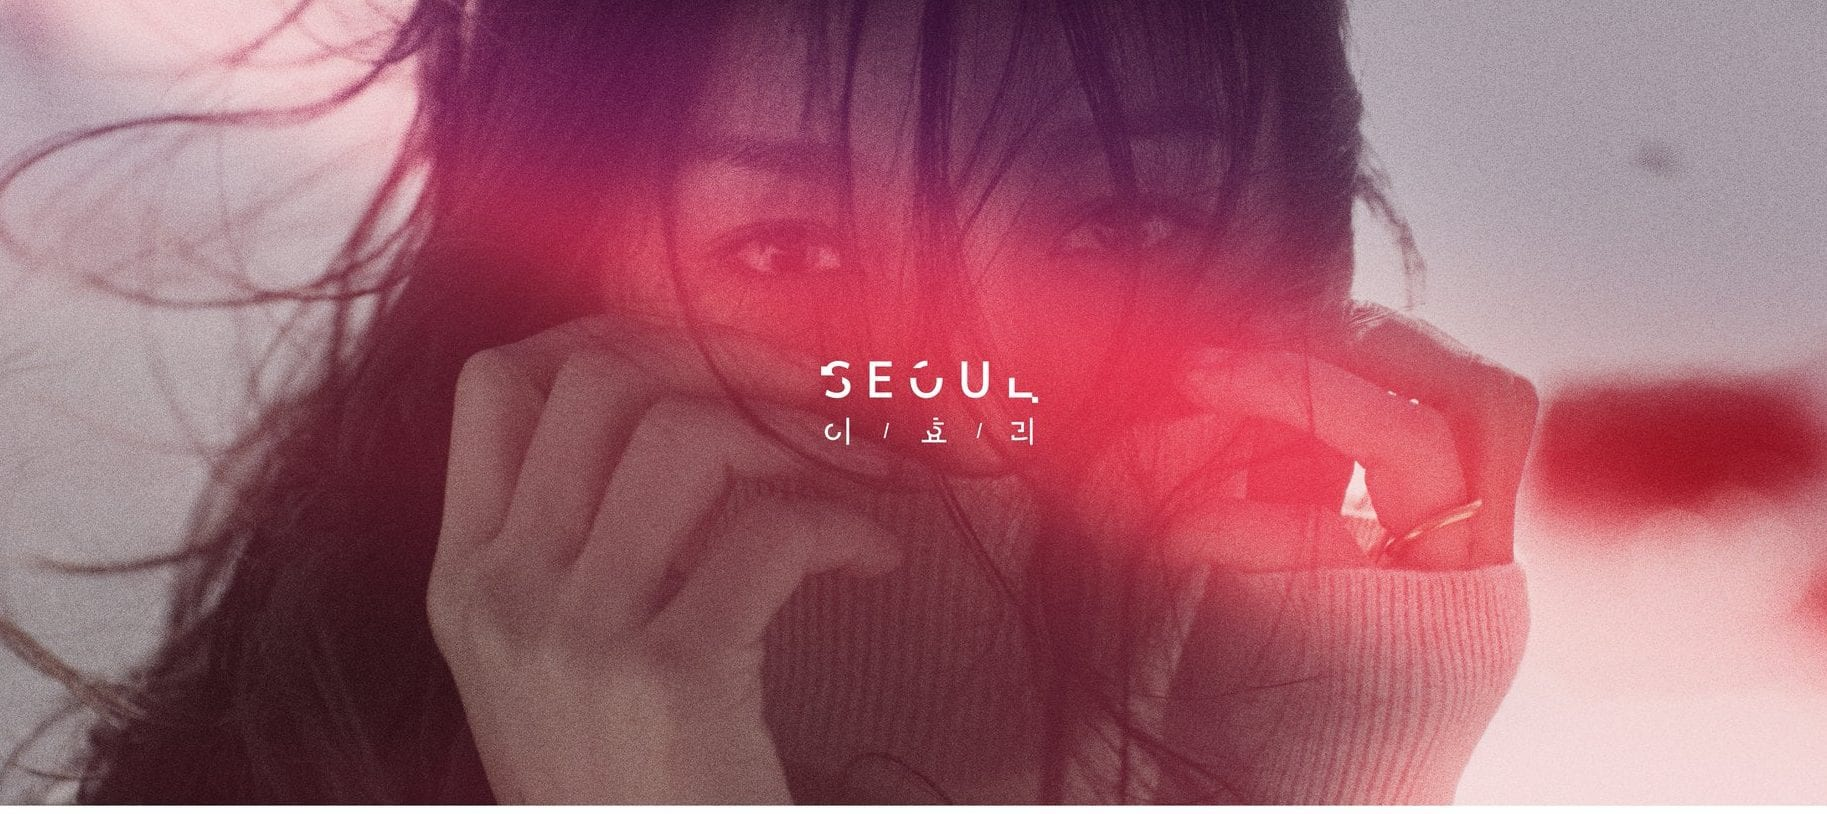 Lee Hyori Announces Upcoming Track In New Teaser Image